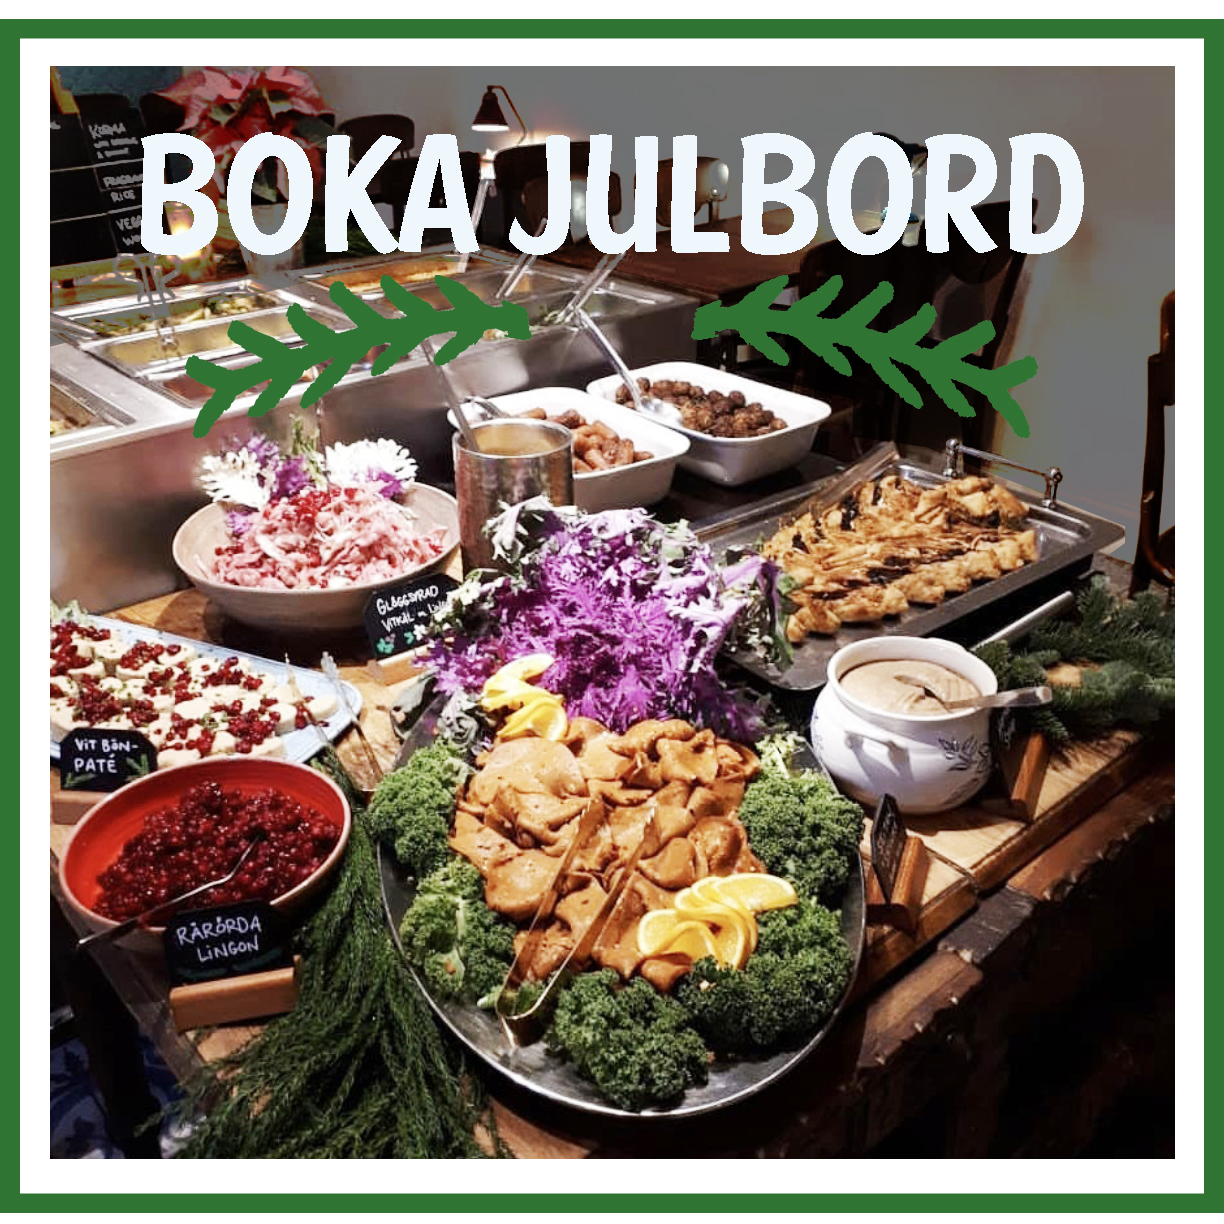 boka-julbord-website